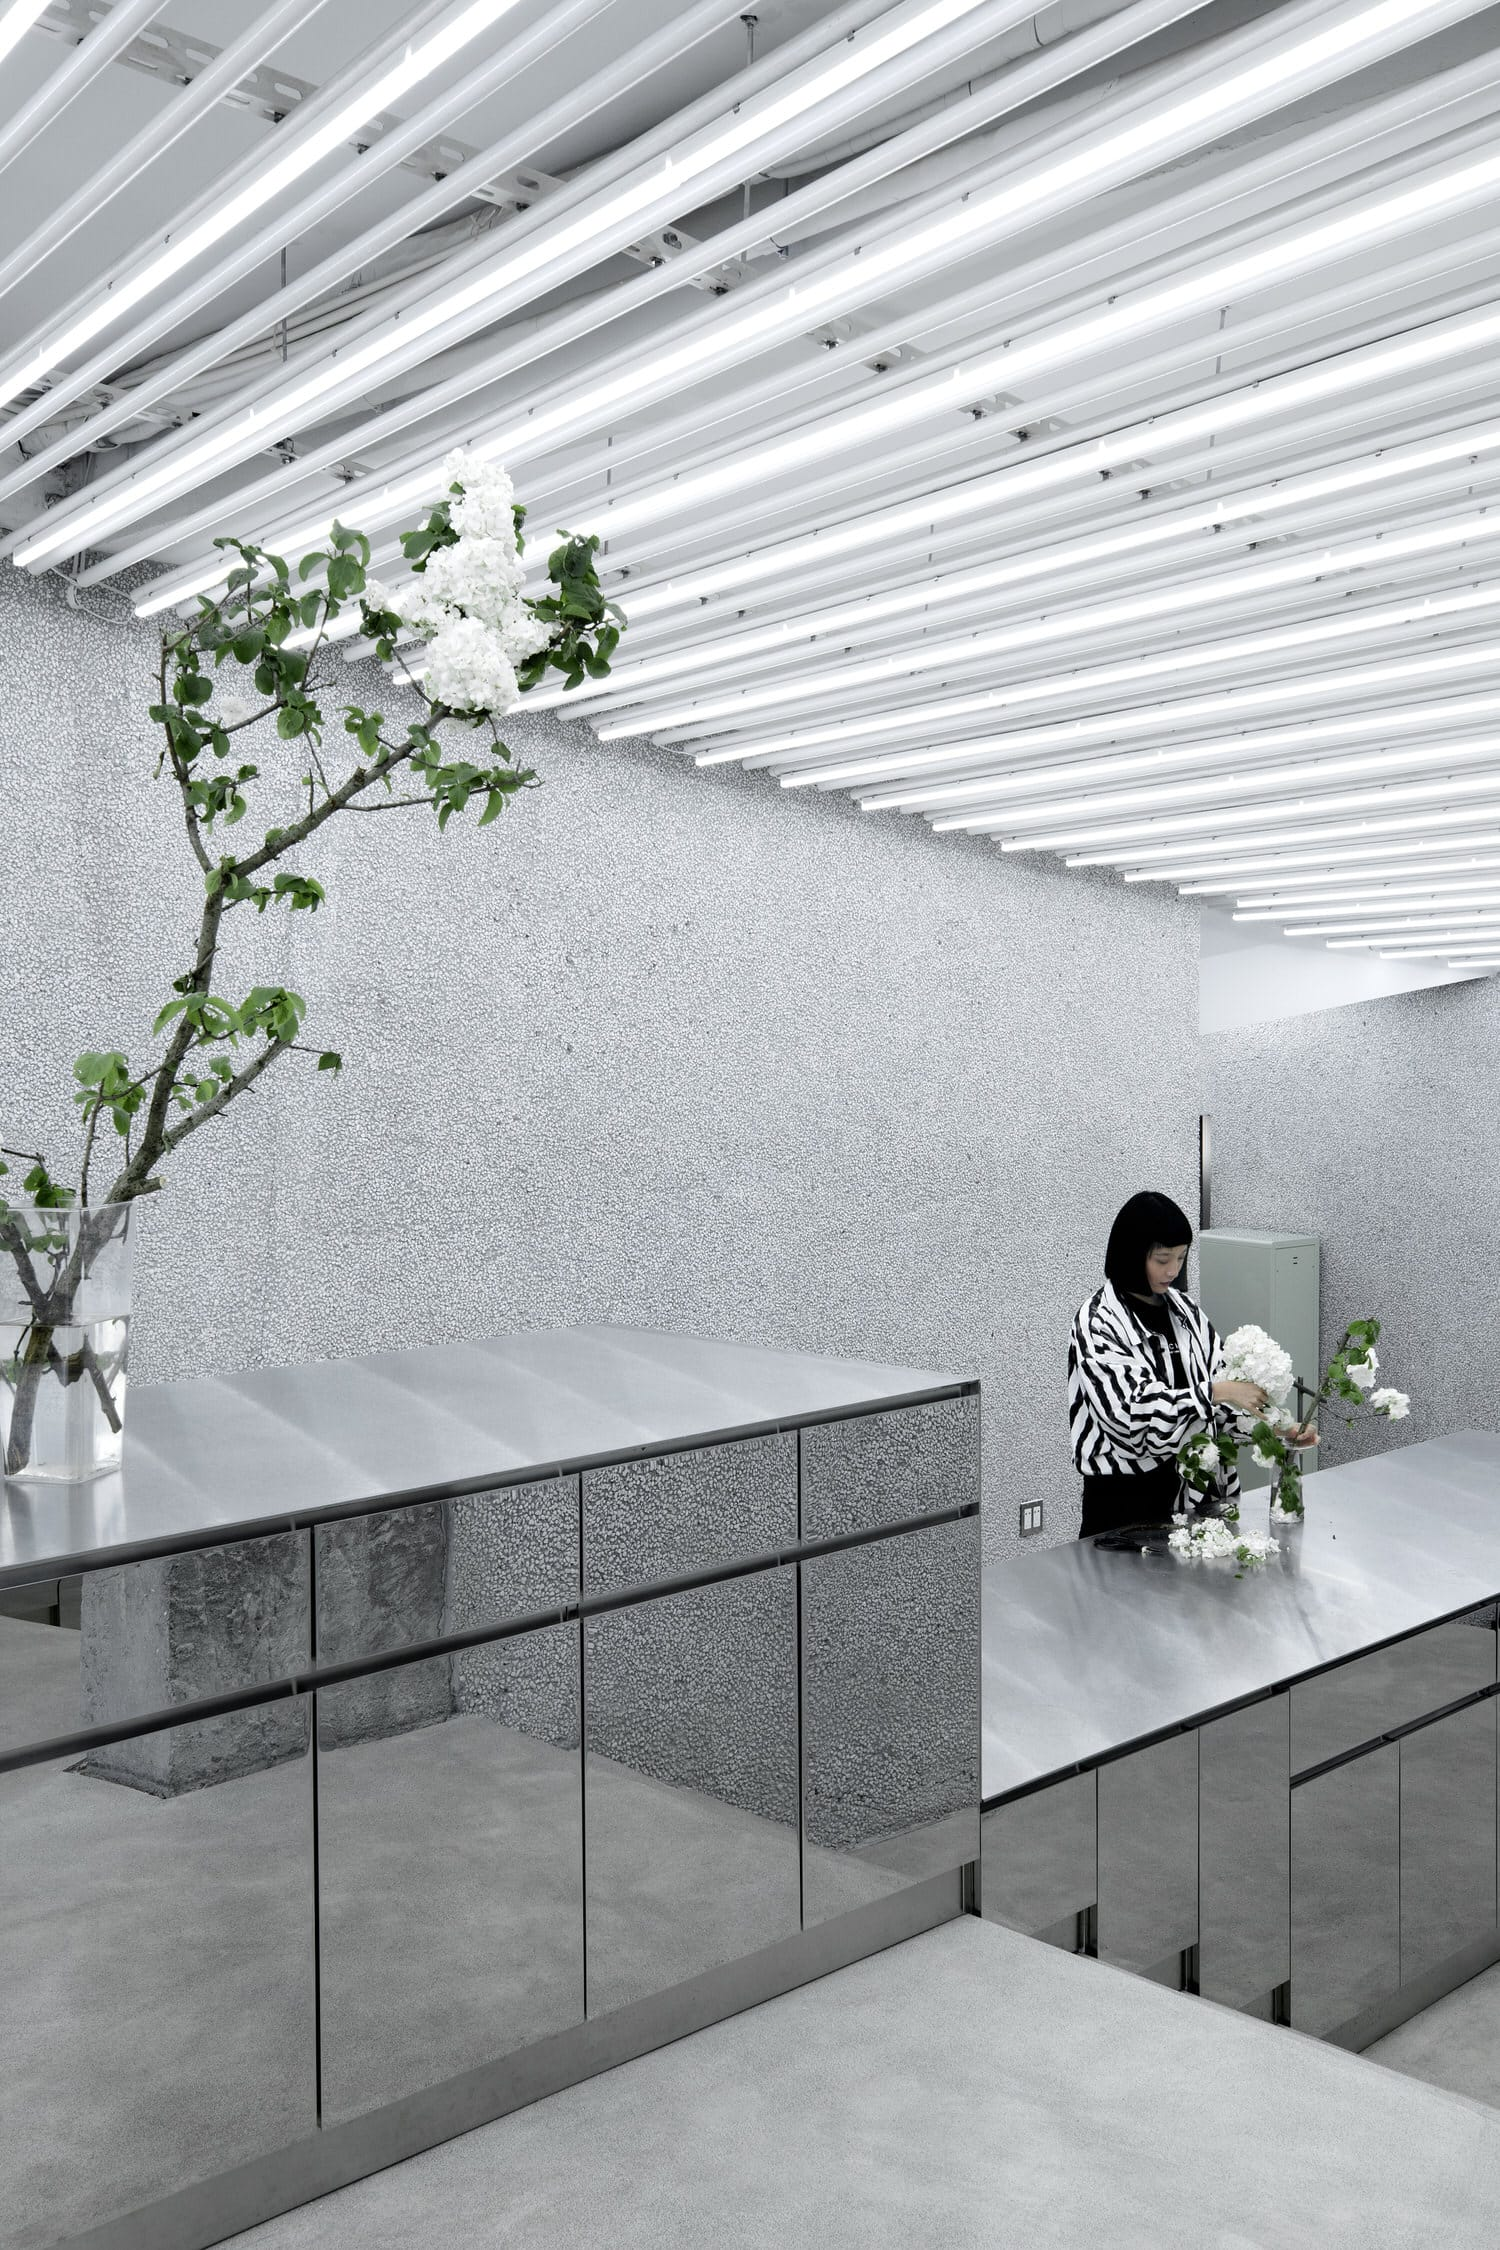 R Society Floral Art Atelier, Yixing, China, 0321 Studio Retail Design Trends | Yellowtrace